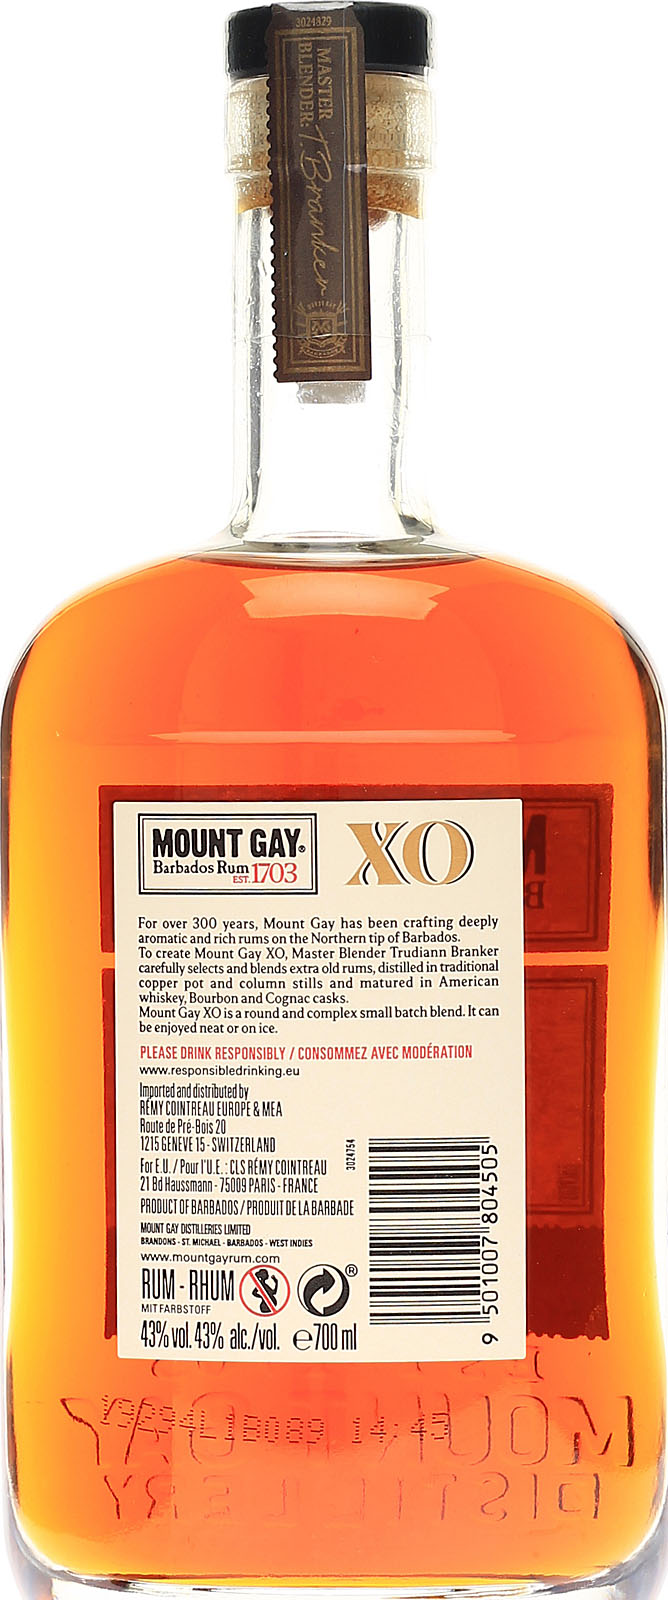 Mount Gay Special Reserve 17